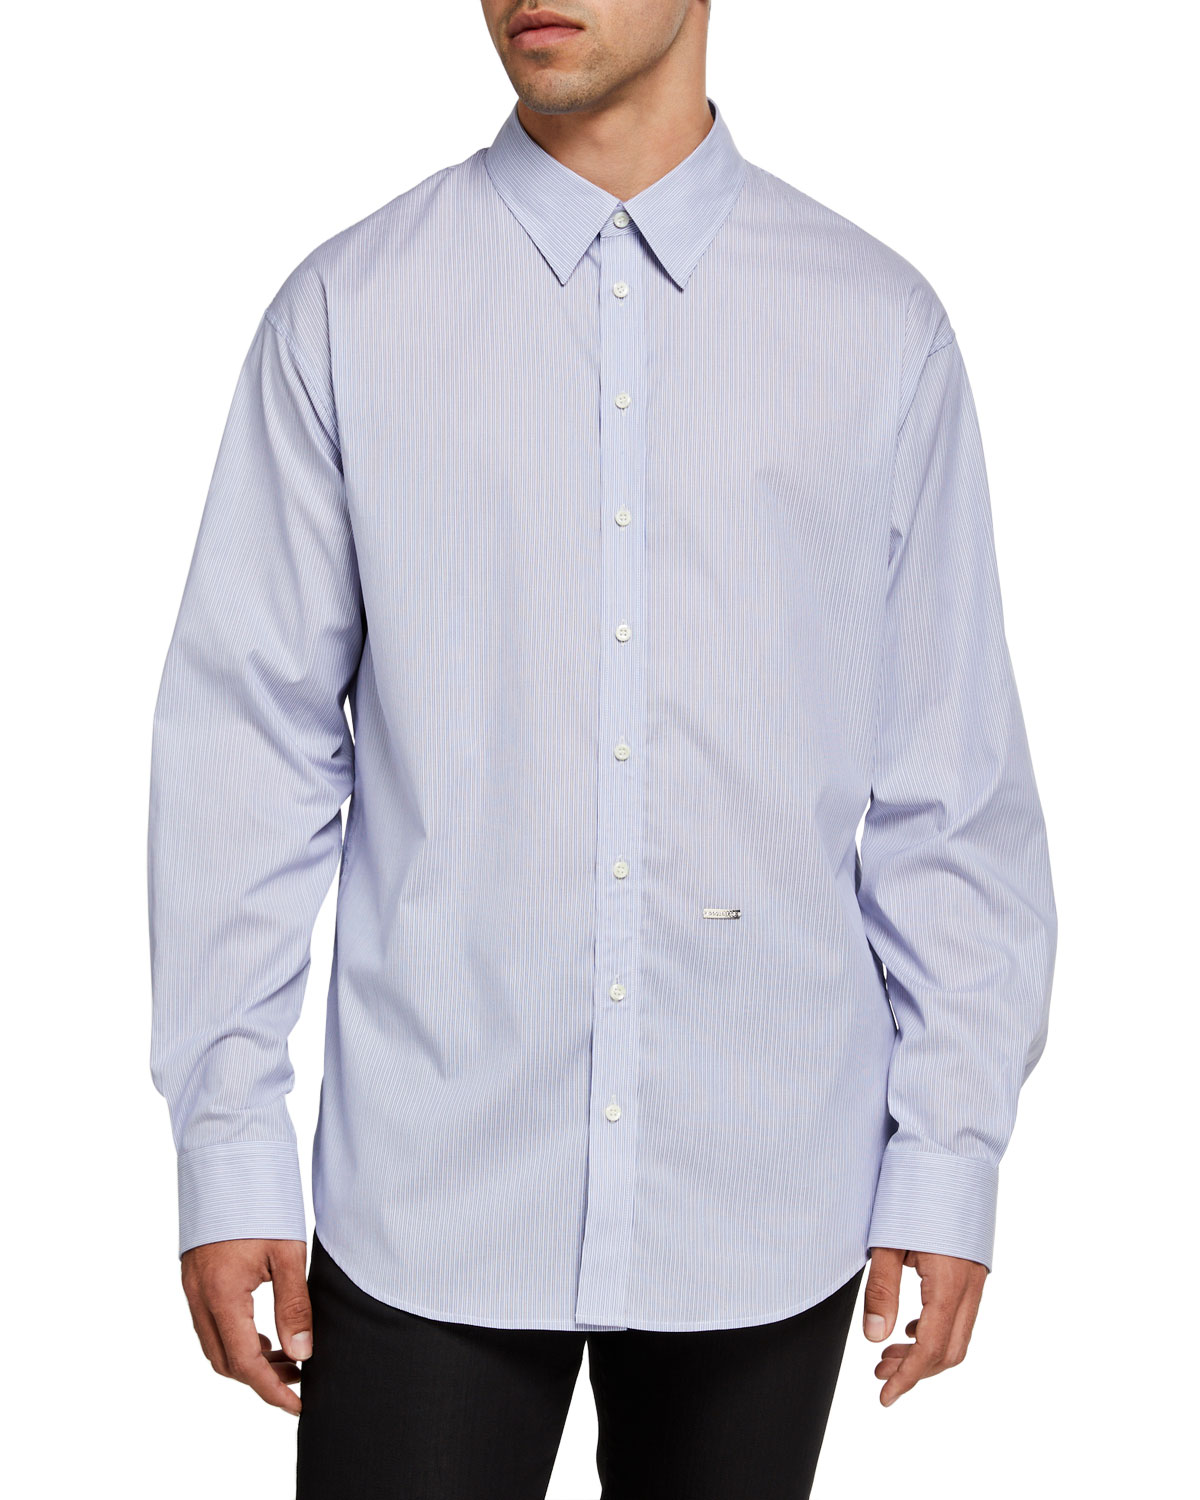 Dsquared2 Men's Pinstripe Cotton Sport Shirt